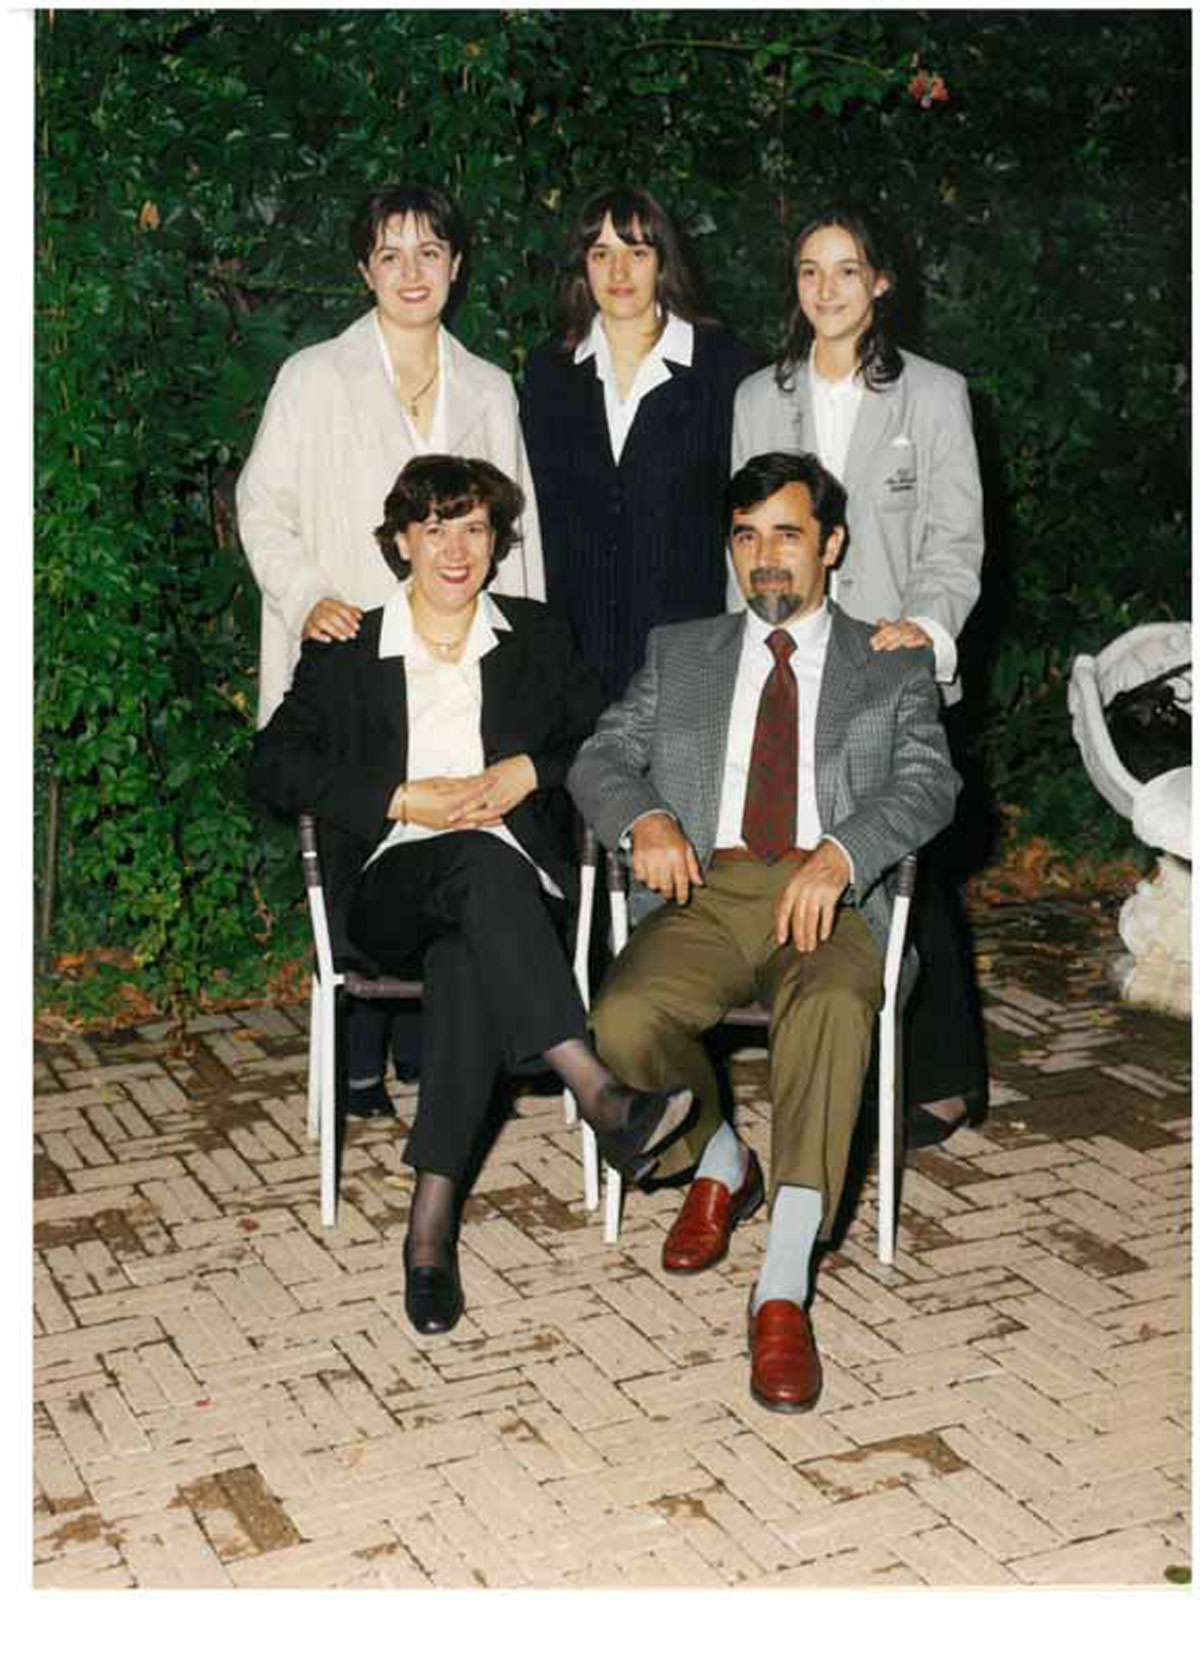 Michela Conti with her family. With her mother and sisters, she is carrying on the business her father founded.